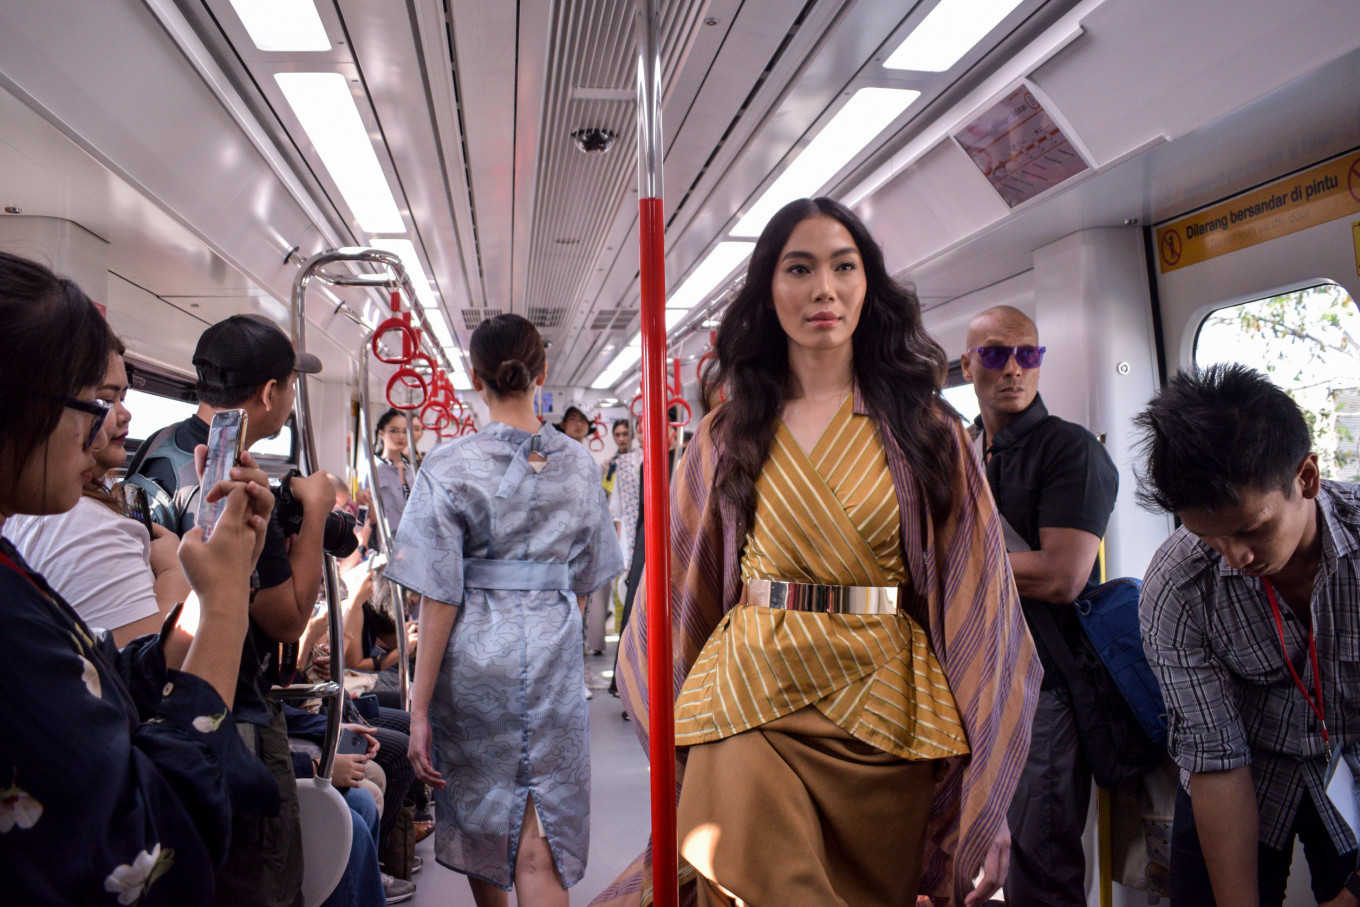 A model walks down the aisle of an LRT Jakarta train, wearing an outfit designed by Eridani.